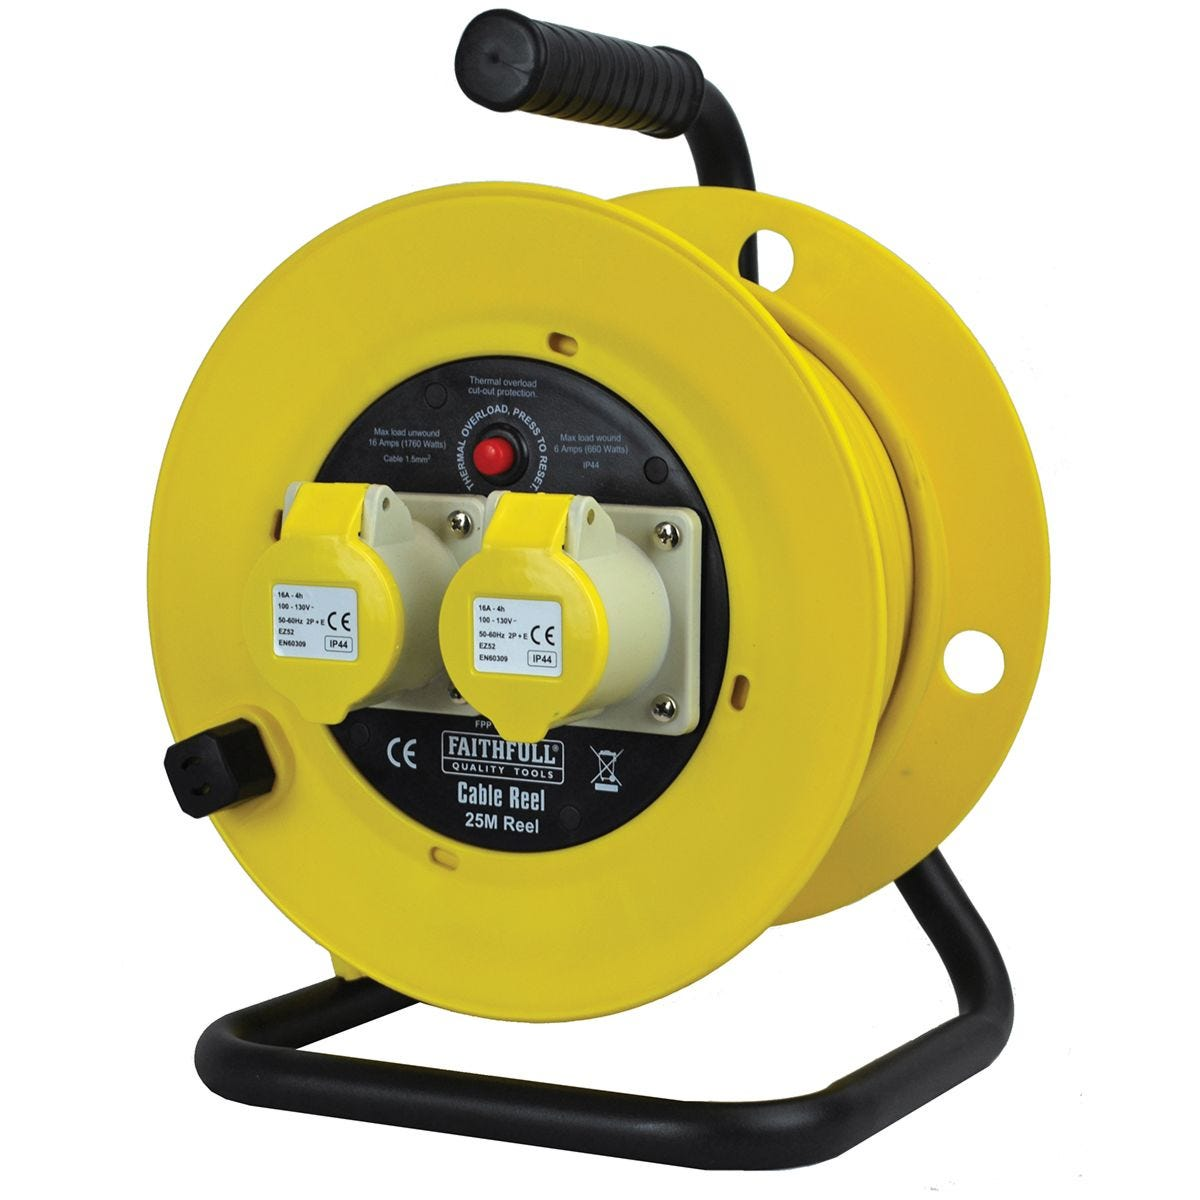 Faithfull Cable Reel 110V 25M 16A (2.5Mm Cable)